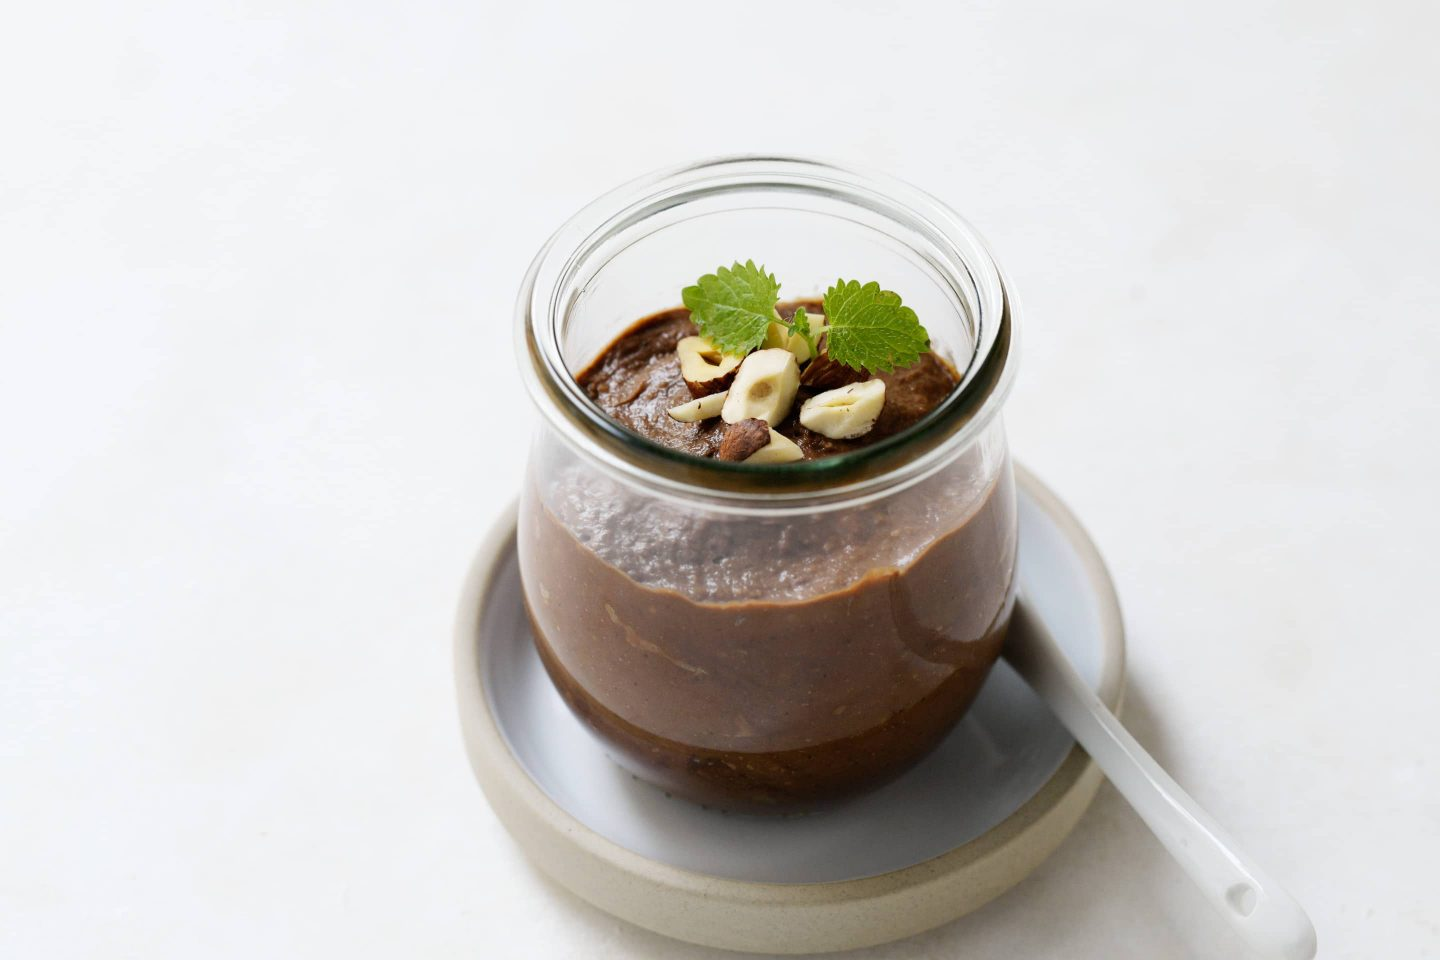 Avocado Schoko Pudding